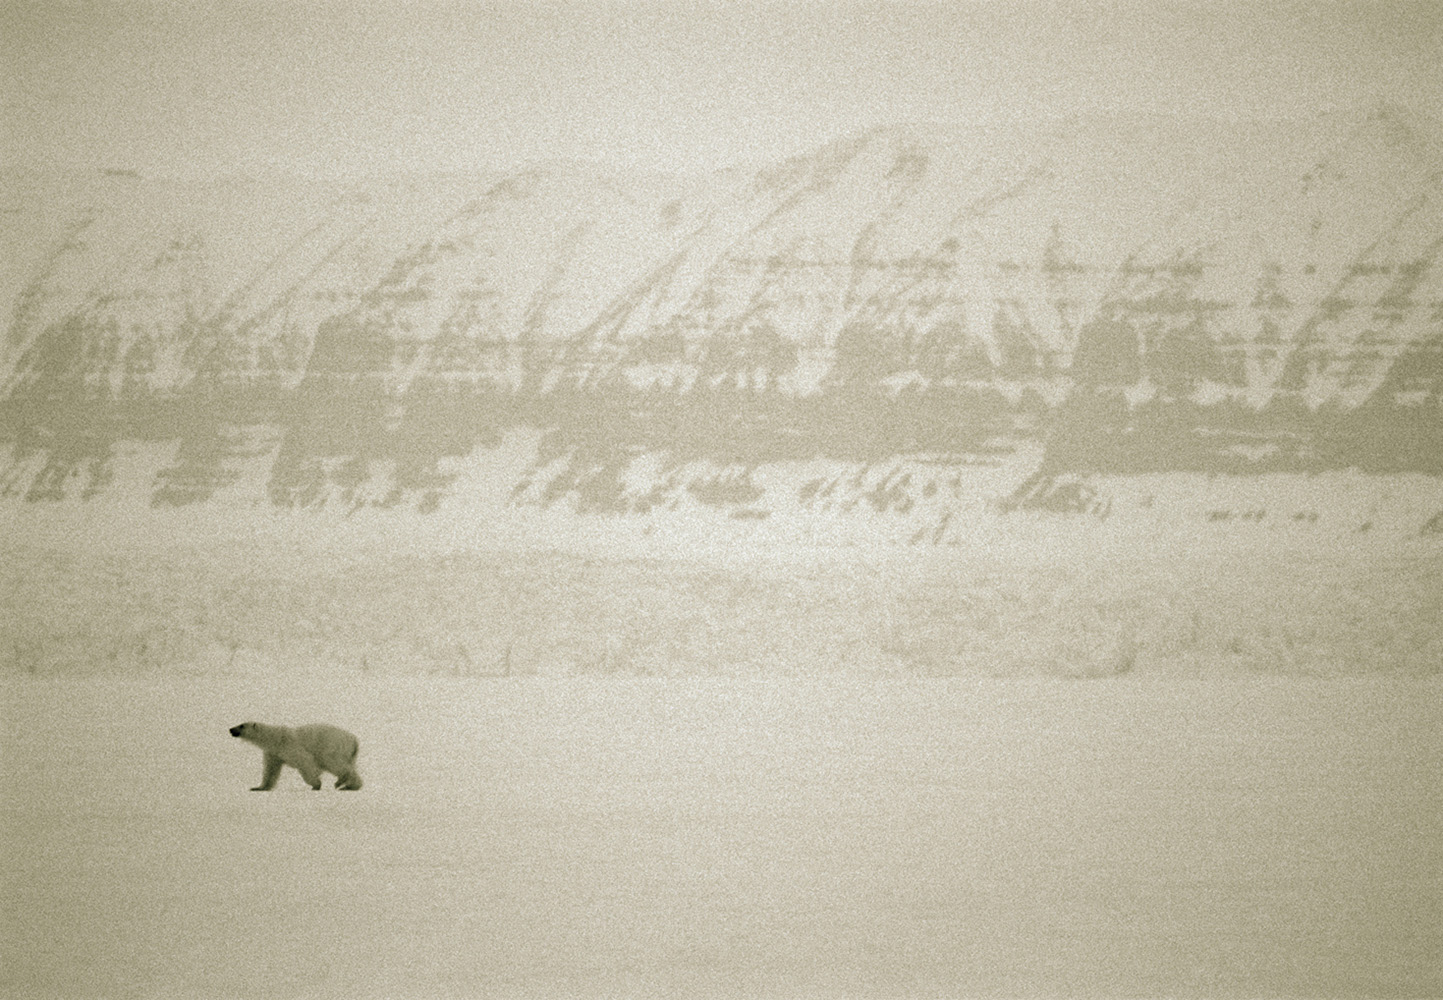 Polarbear on Svalbard, Norway.